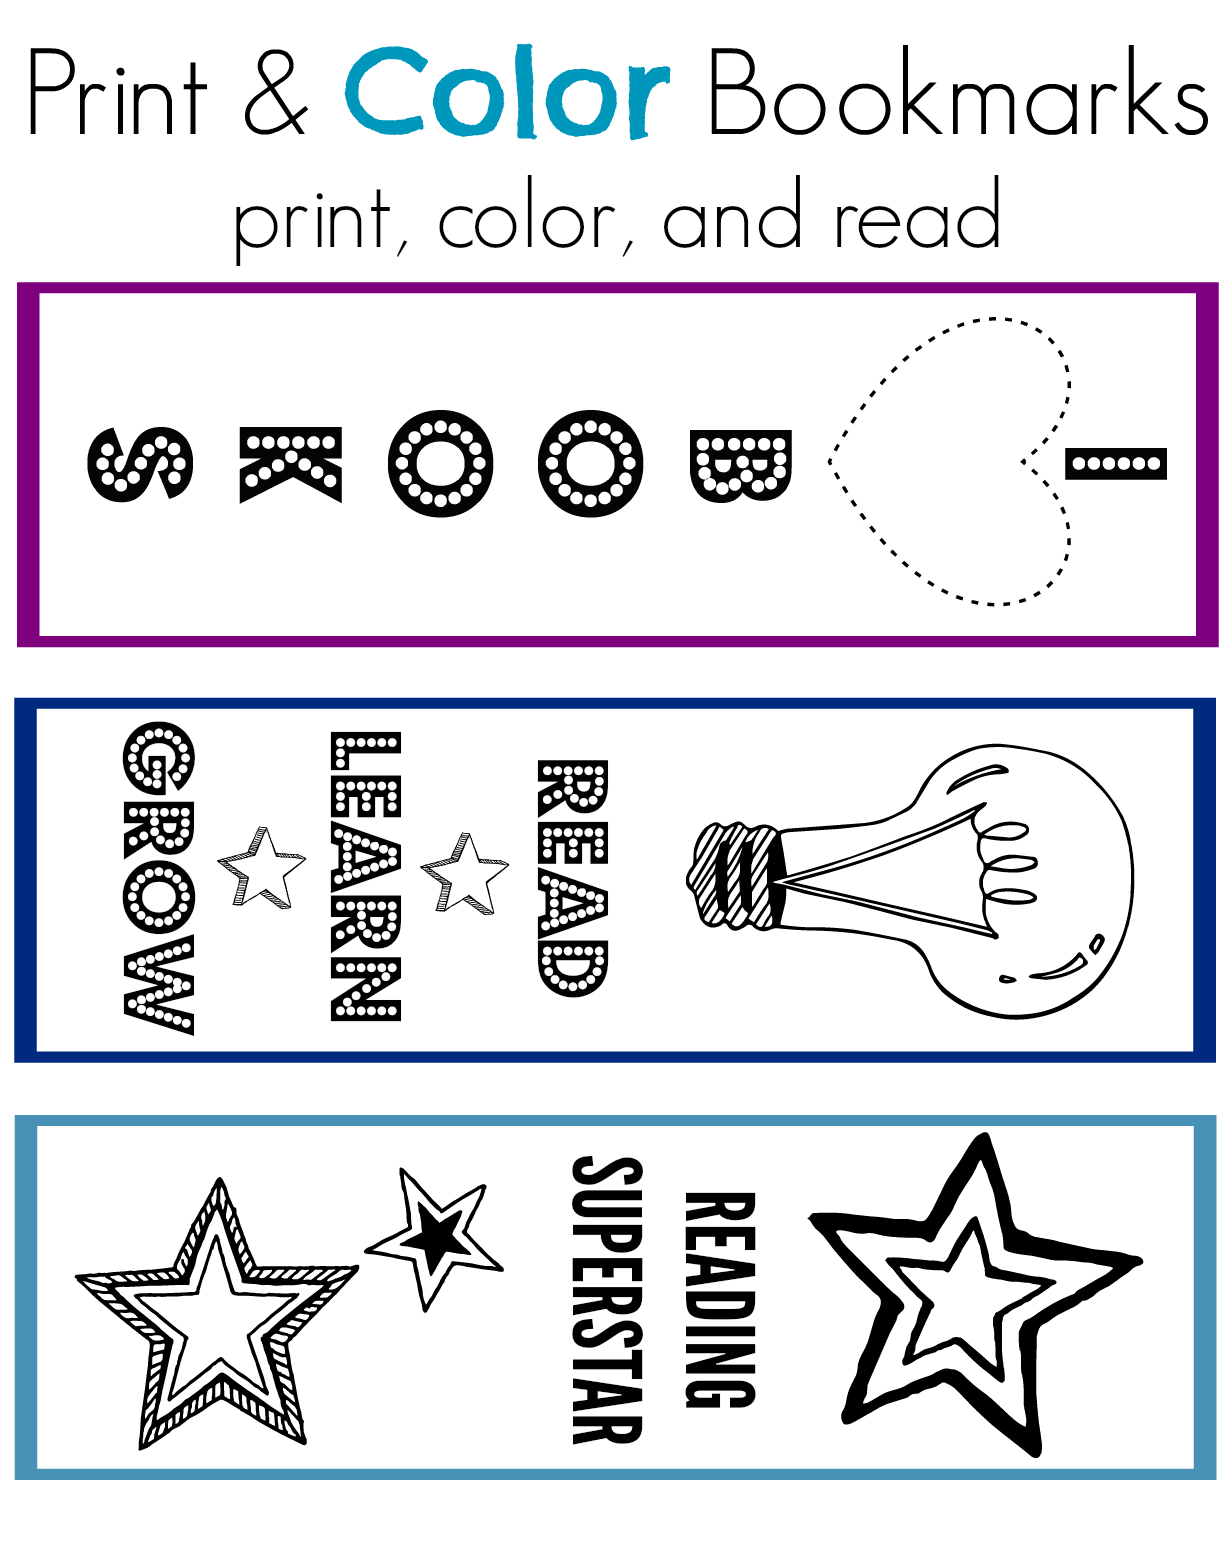 National Book Month Print Color Bookmarks